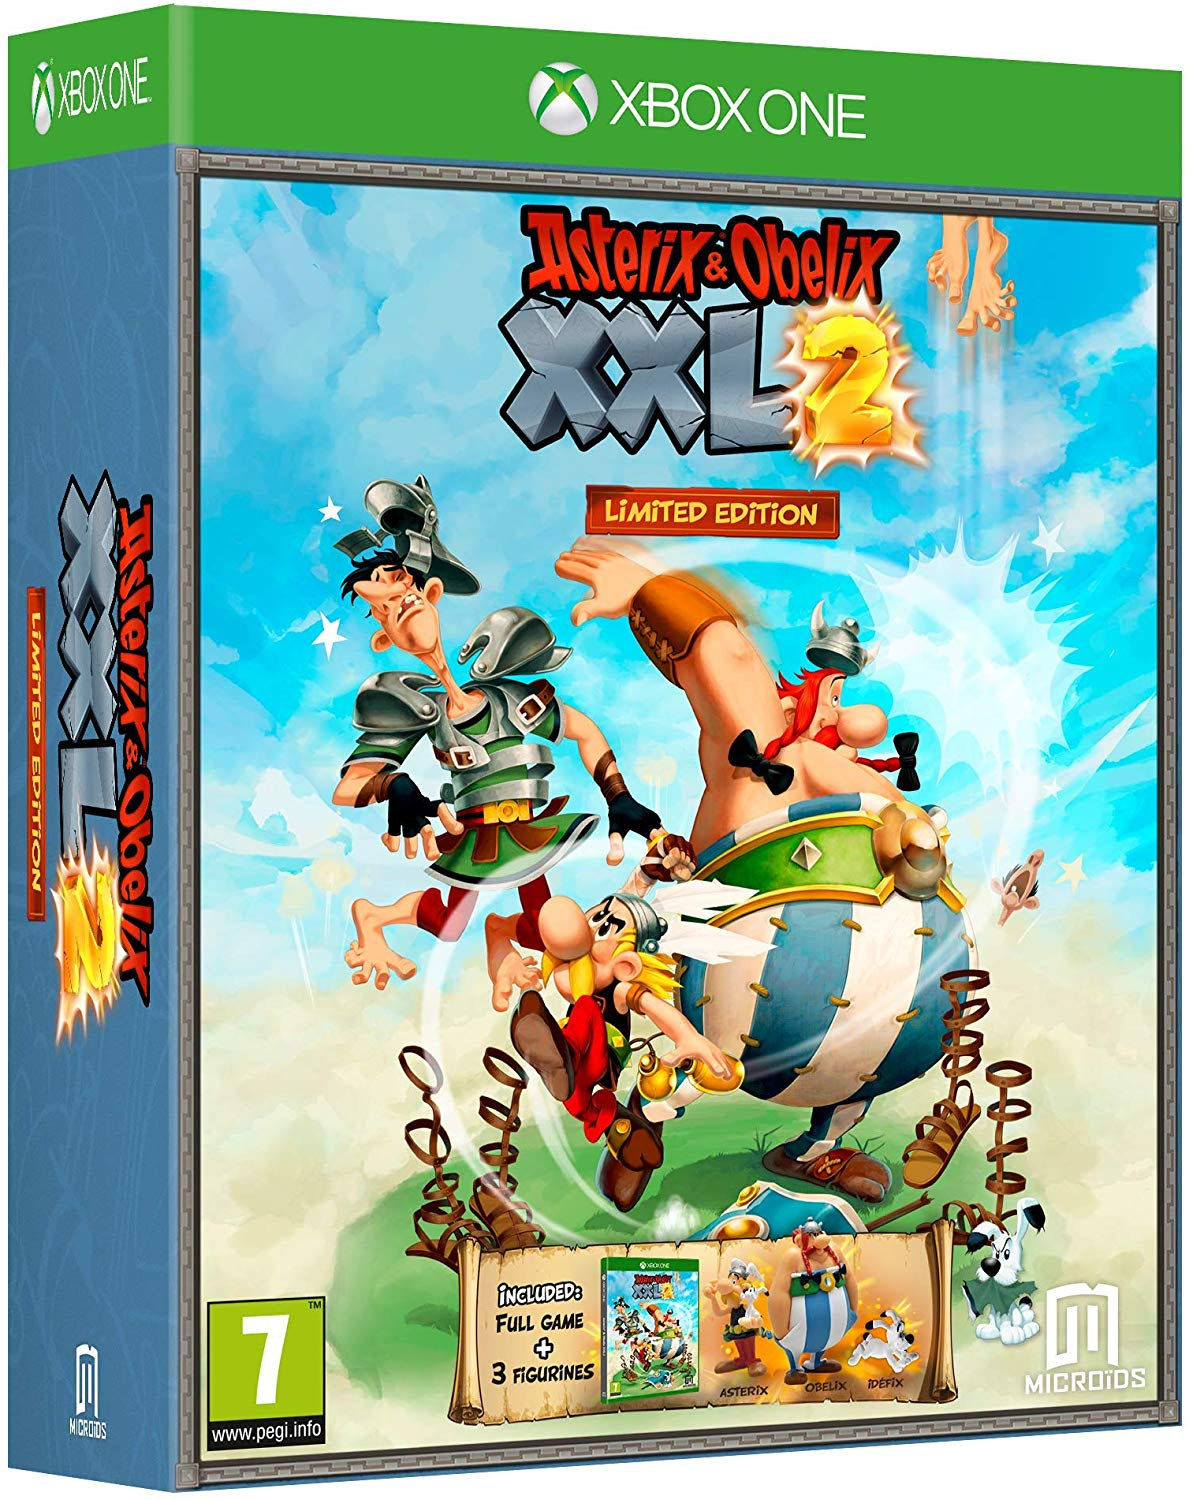 Asterix & Obelix XXL 2 Limited Edition